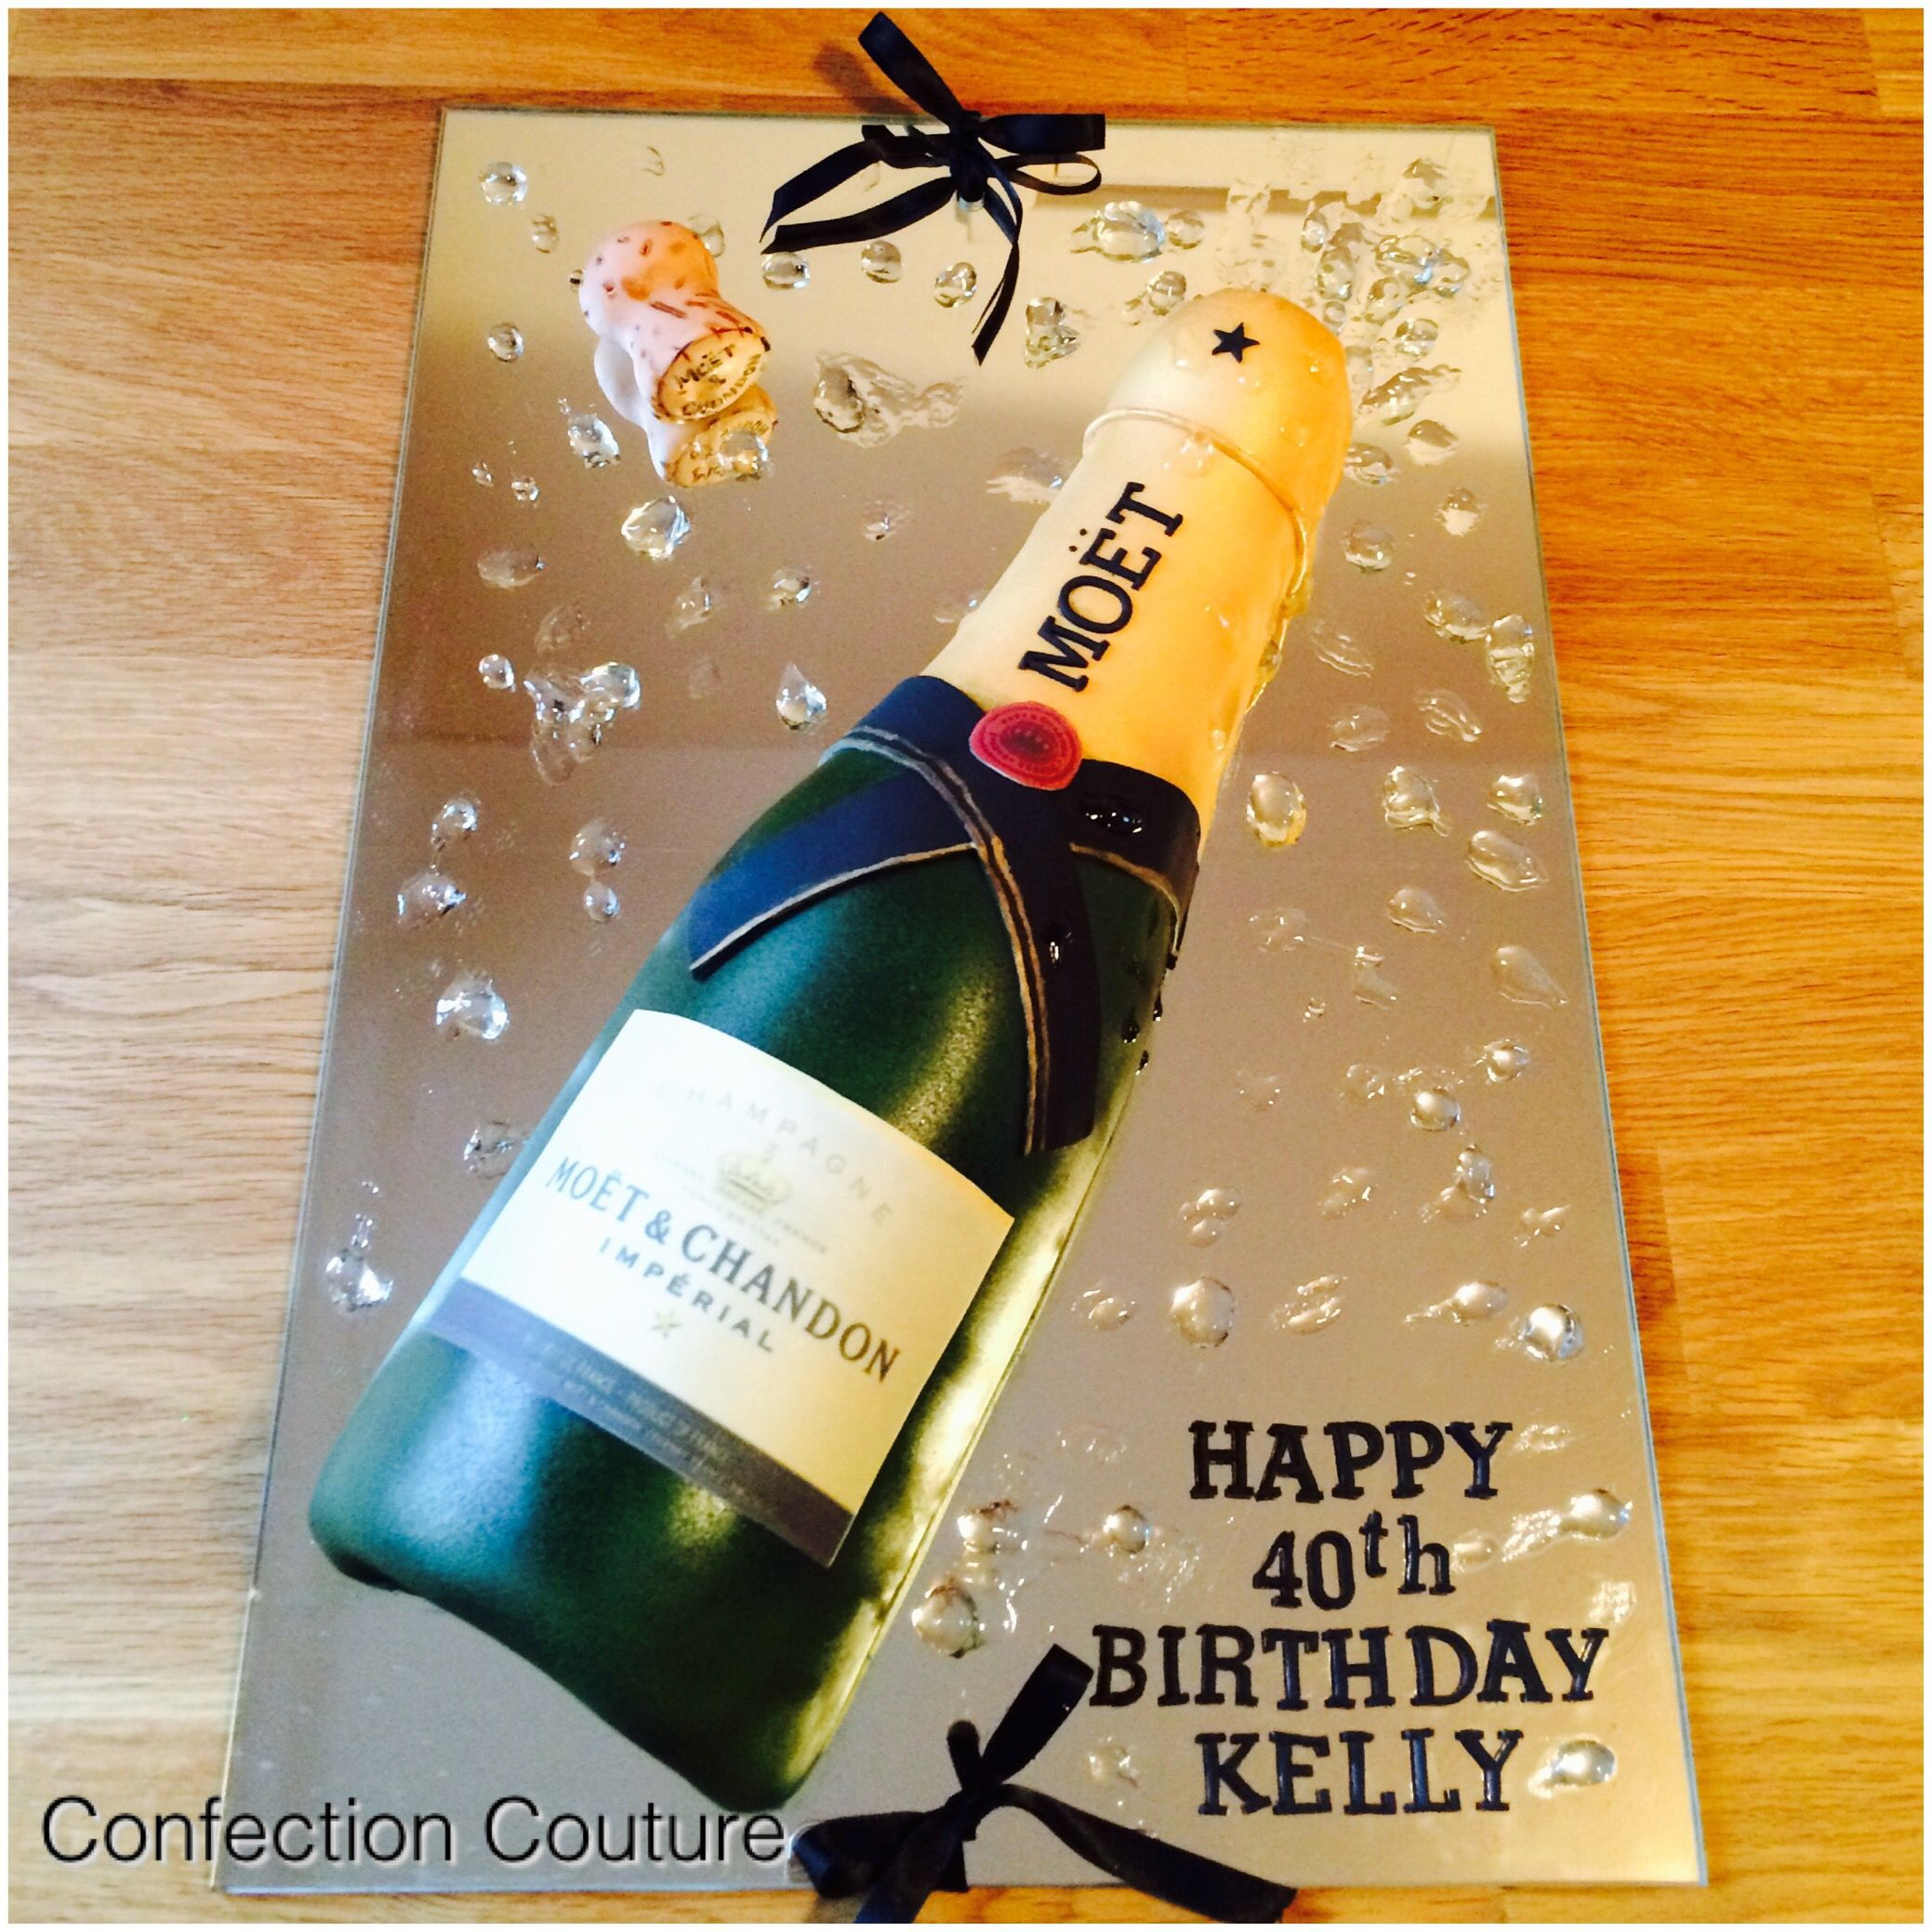 Mo 235 T Amp Chandon Champagne Bottle Cake My Obsession In 2019